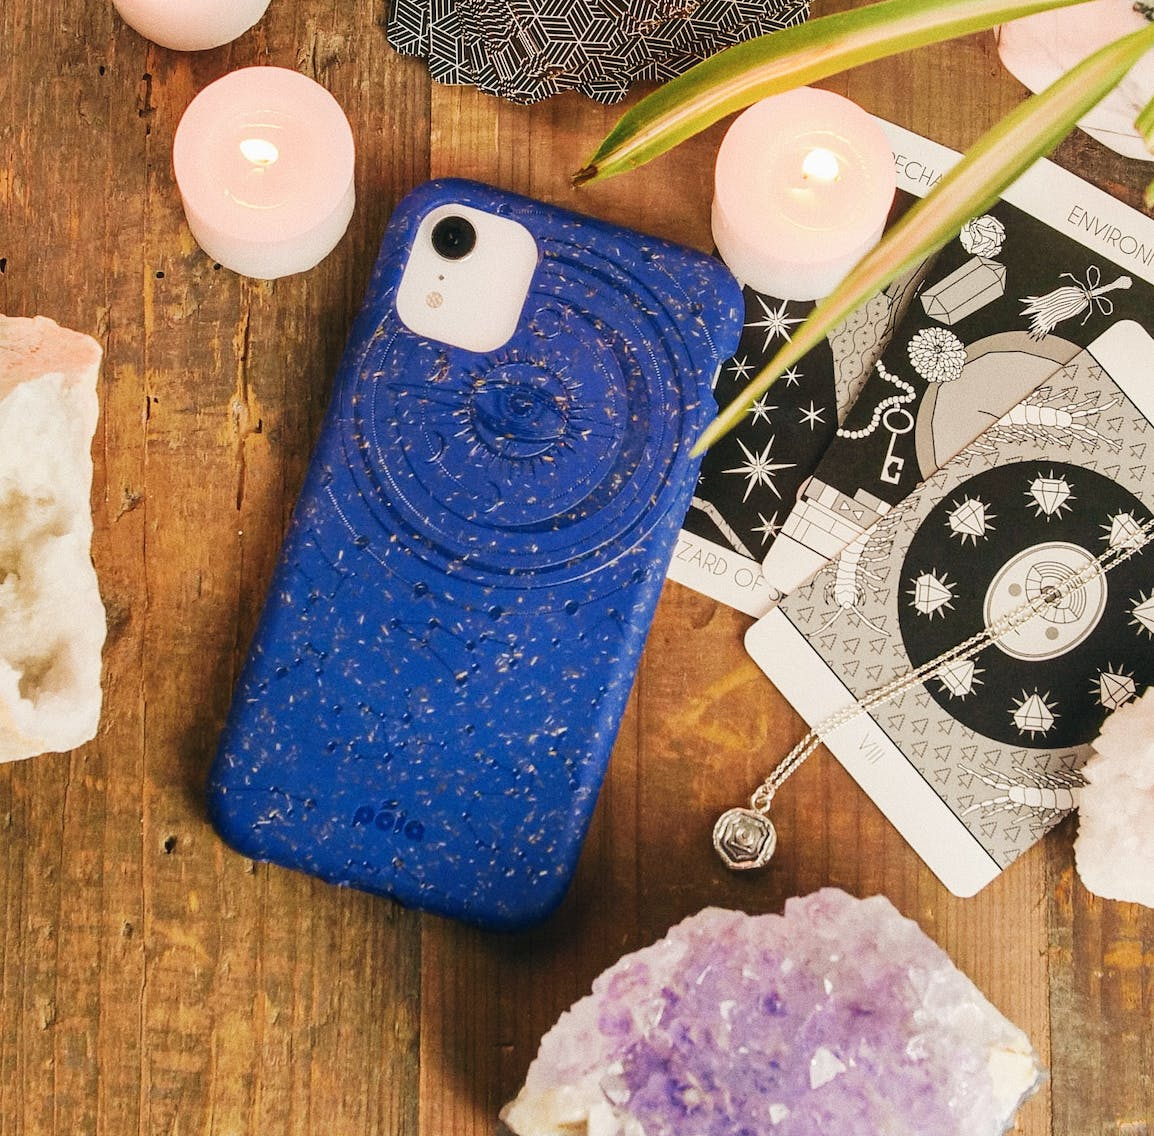 Retrograde biodegradable, eco-friendly Pela phone case